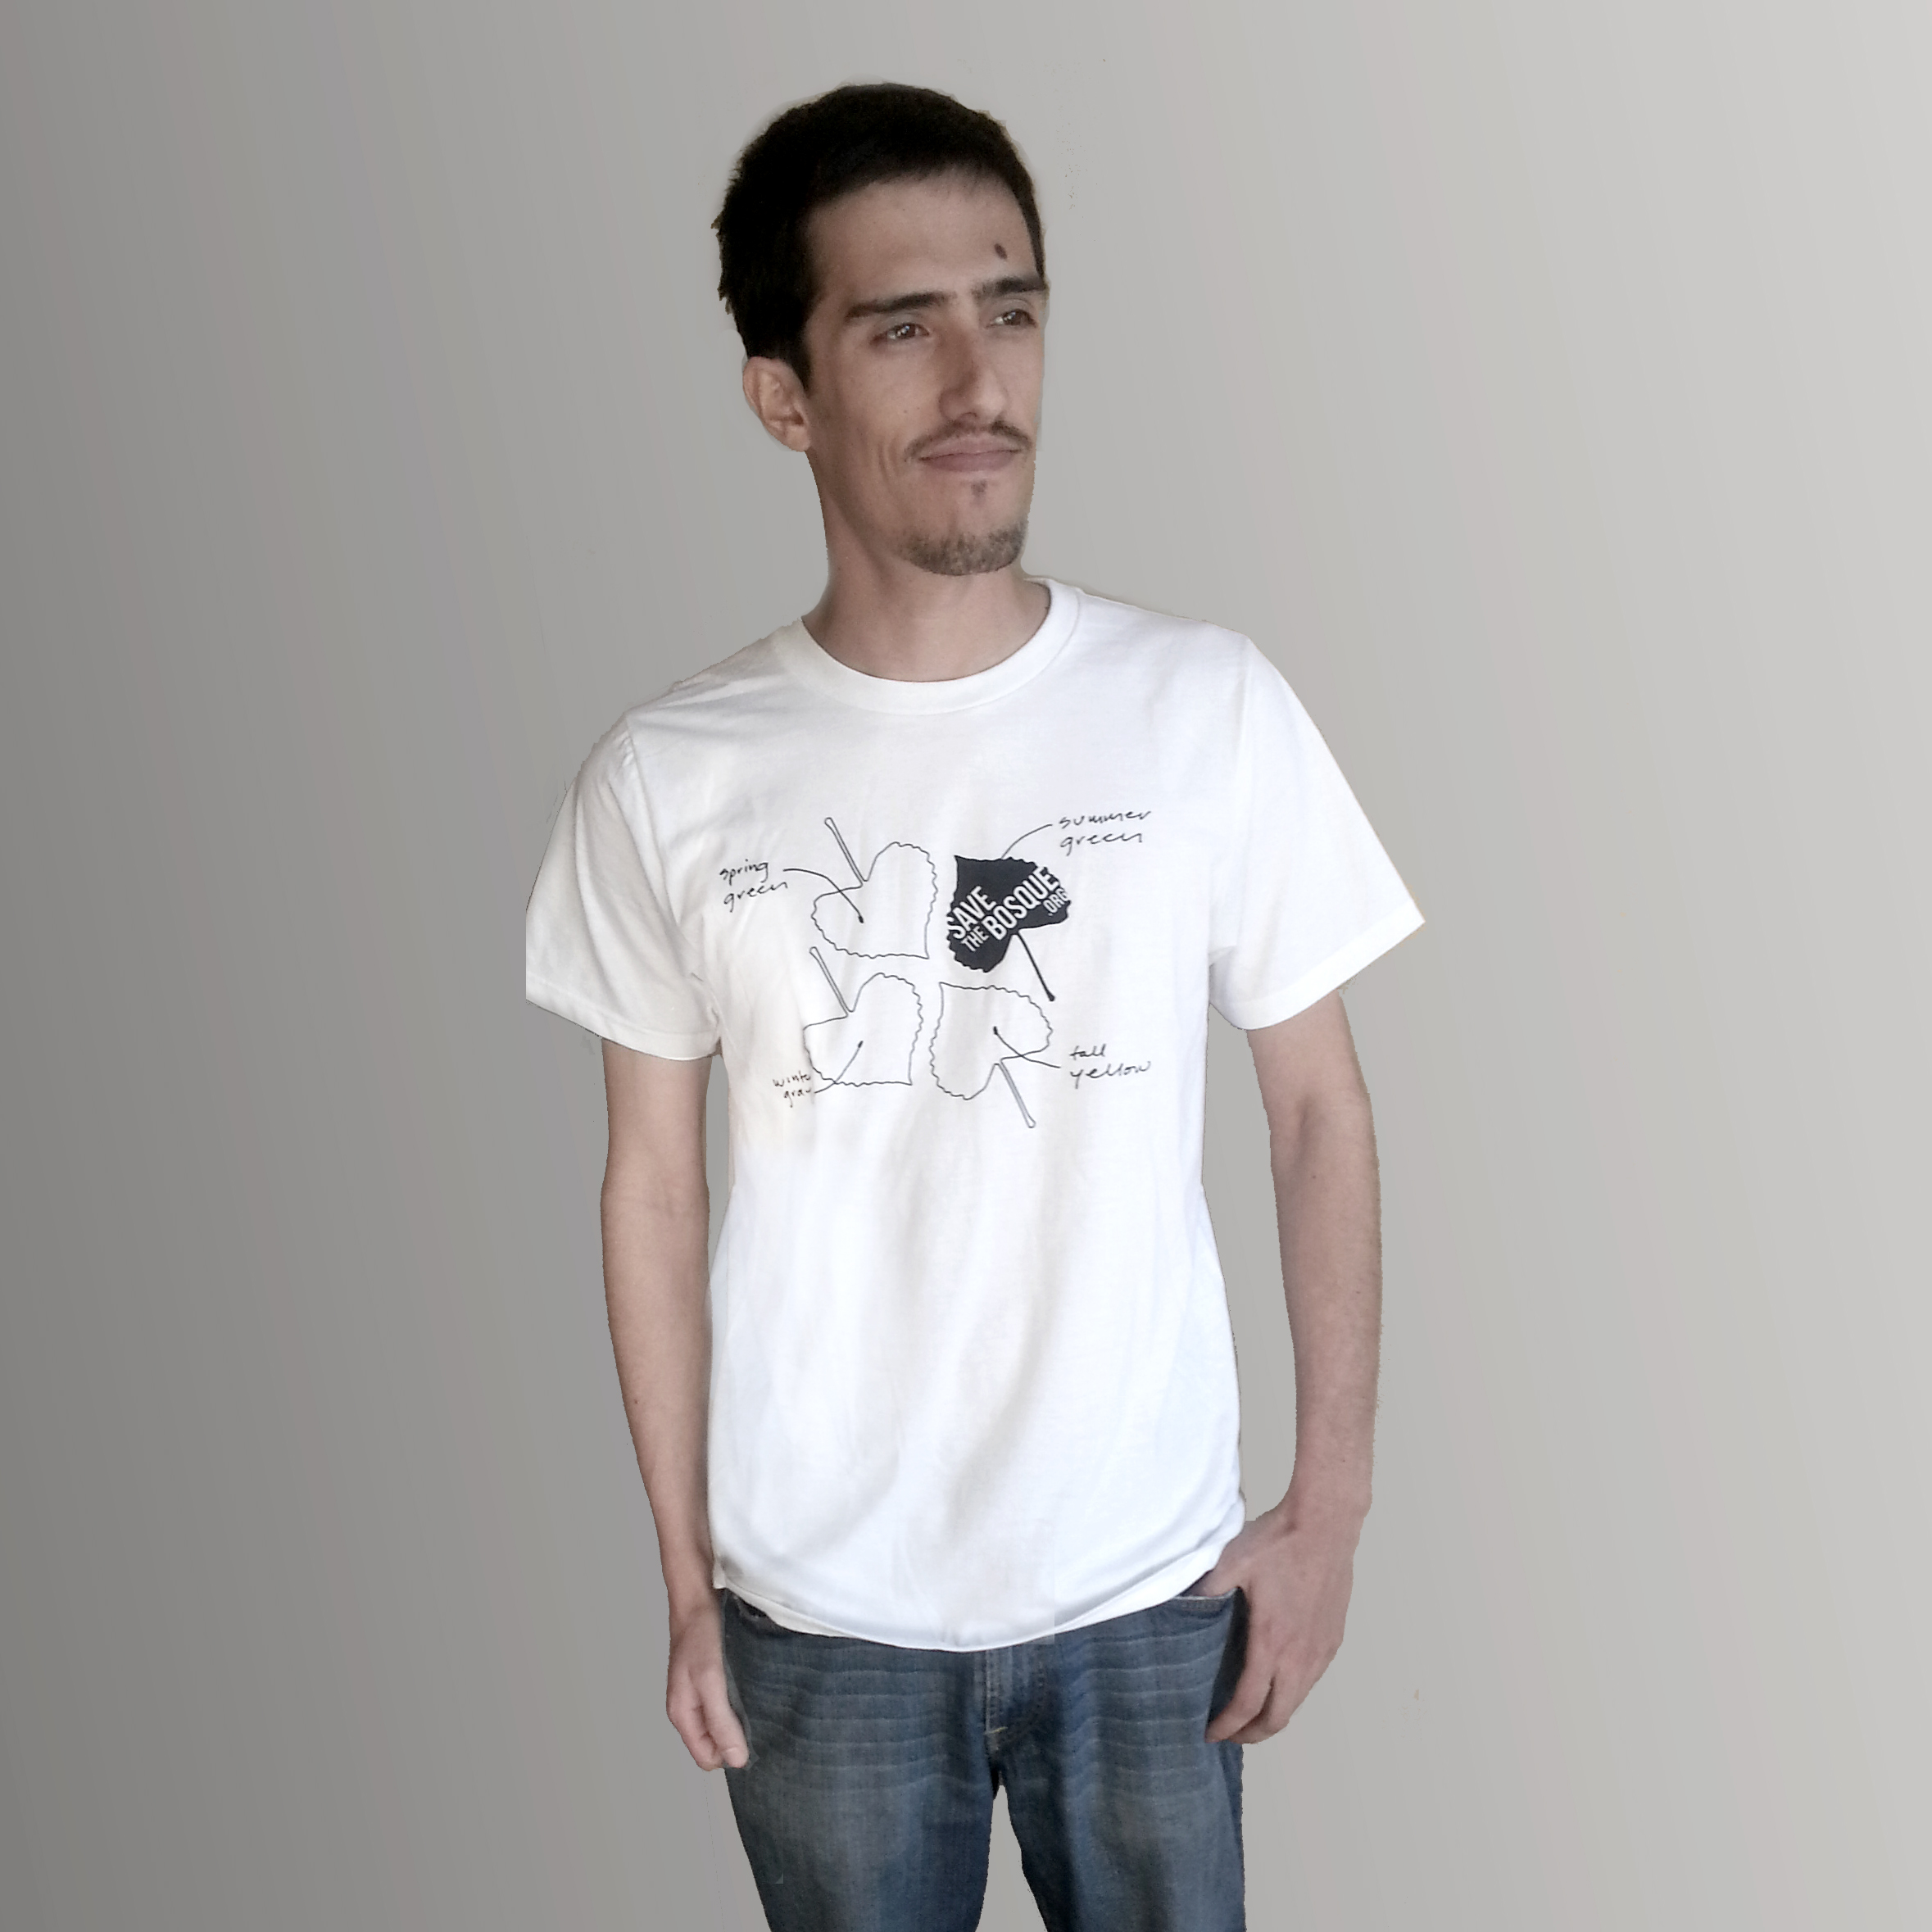 bosque-t-shirt.jpg